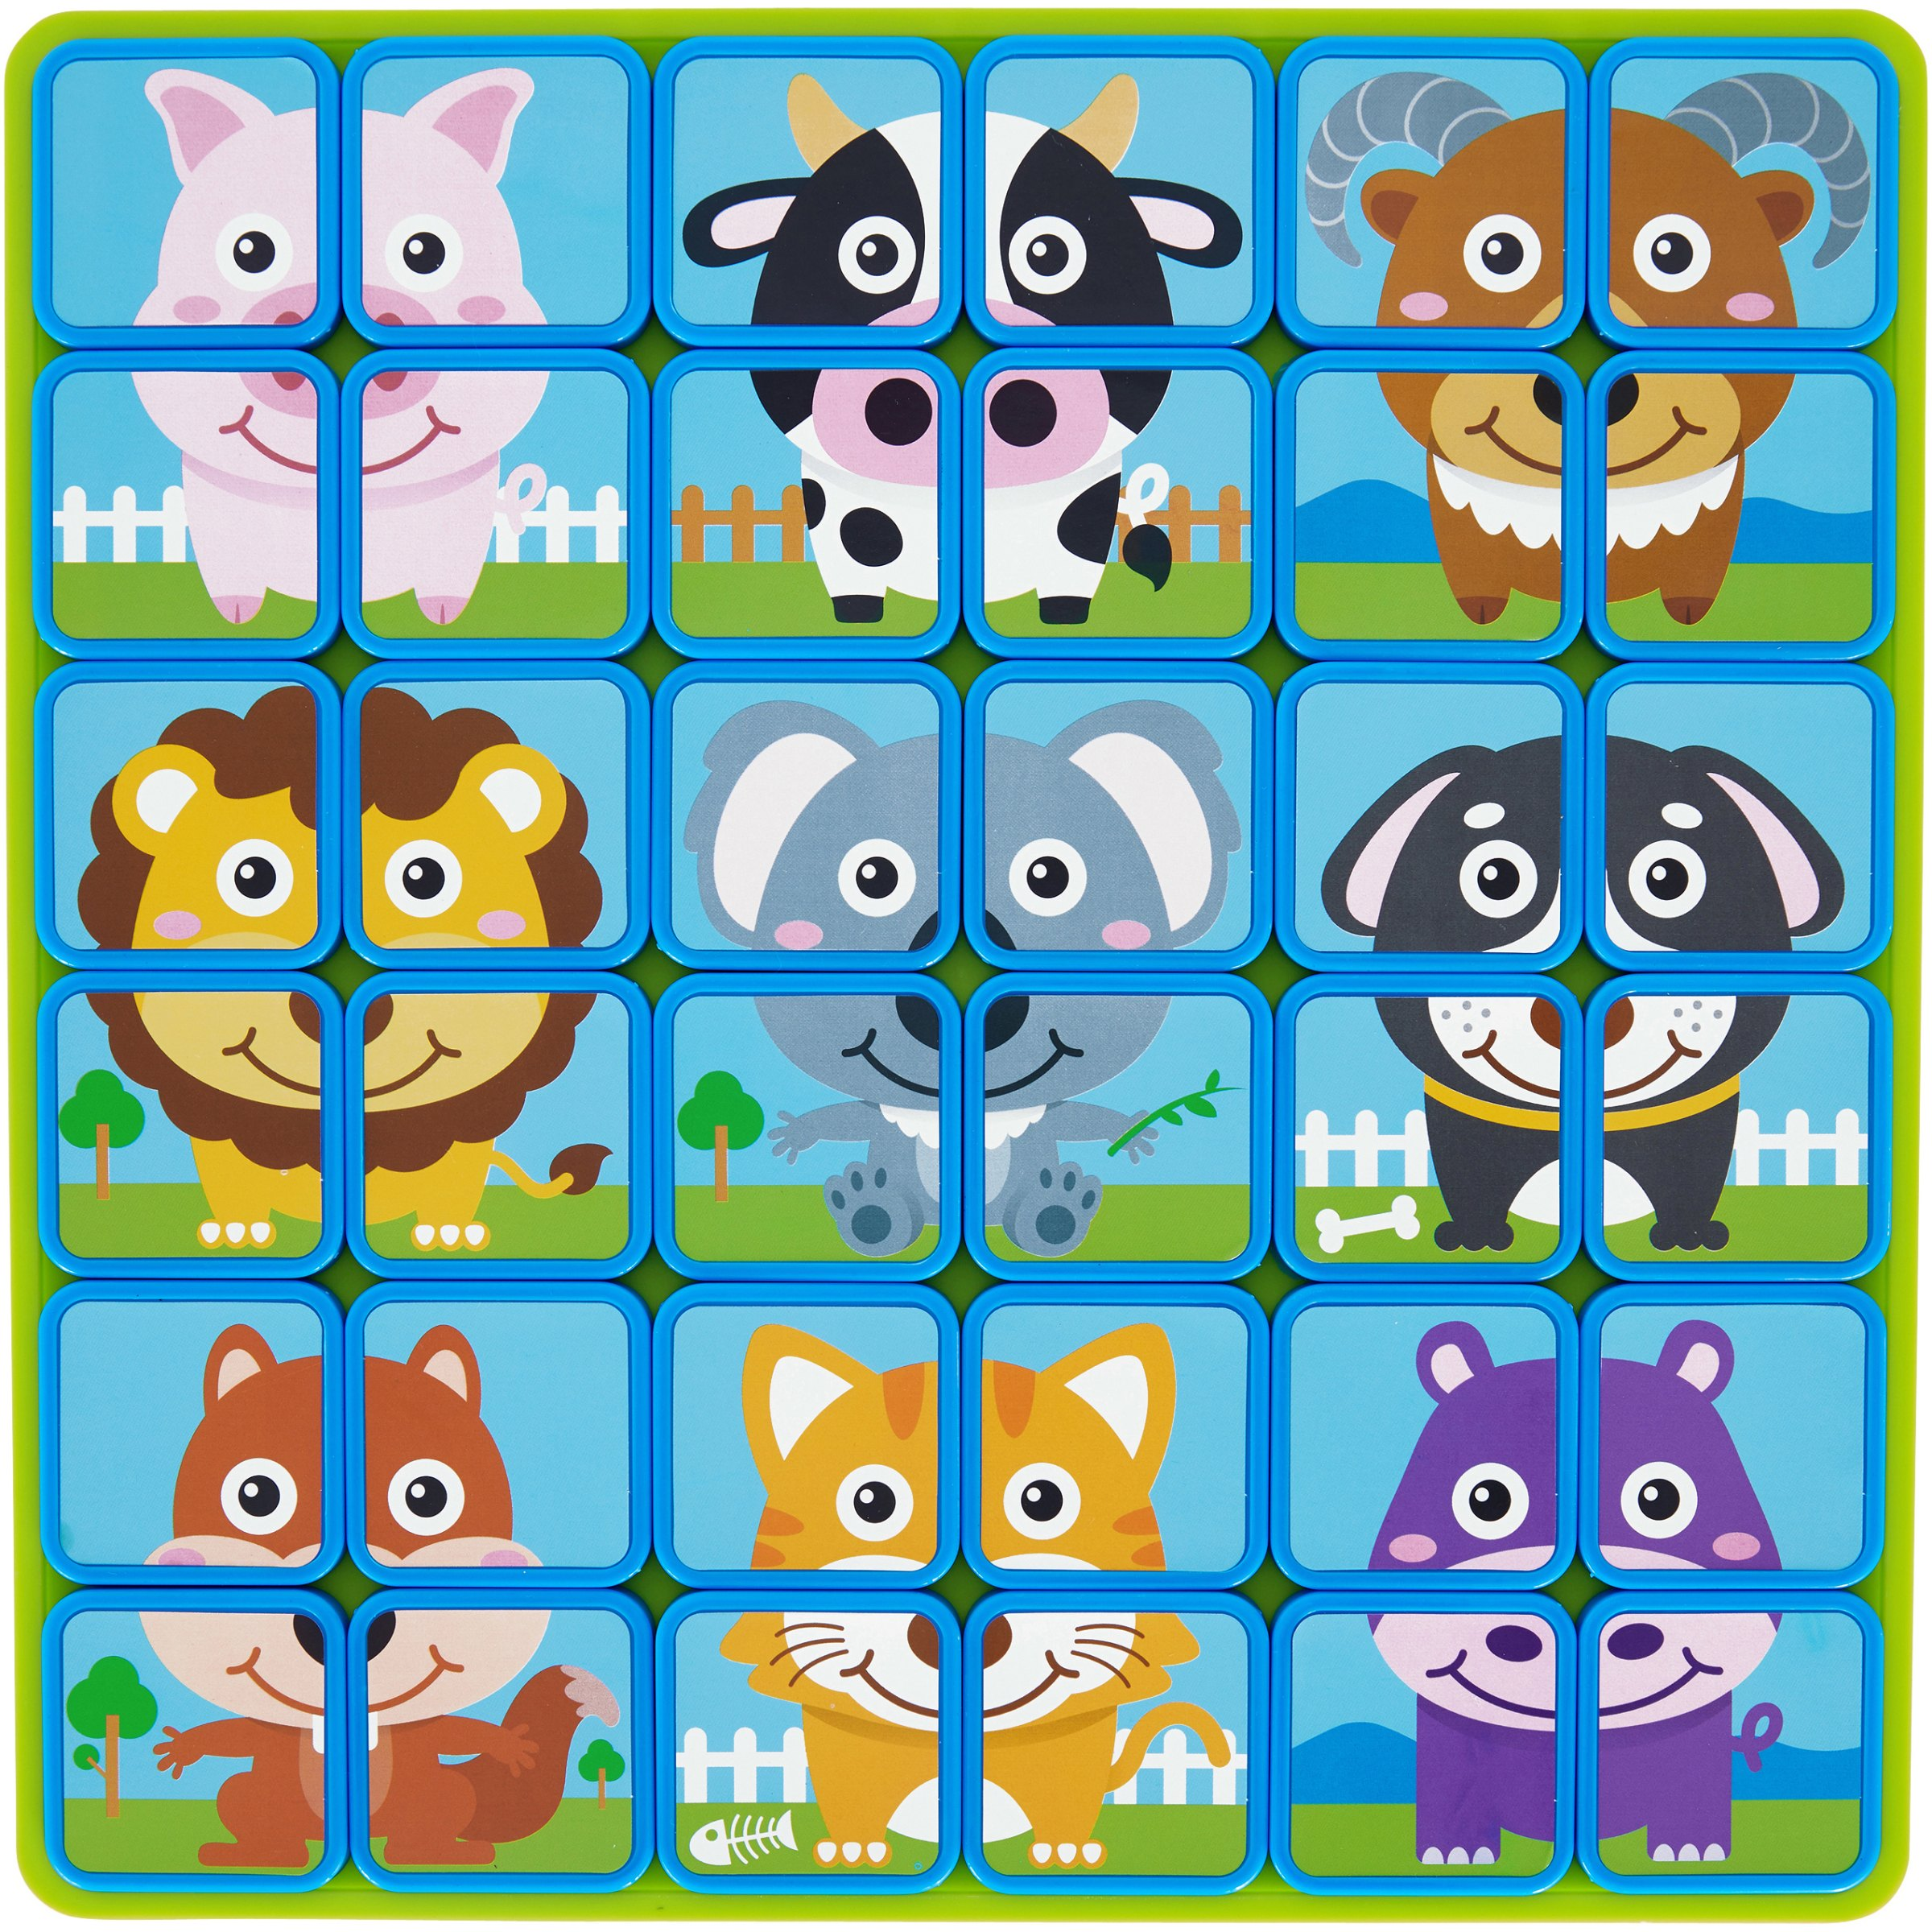 Spark. Create. Imagine. 37-Piece Animal Pictures Magnetic Puzzle, Designed for Ages 2 and Up